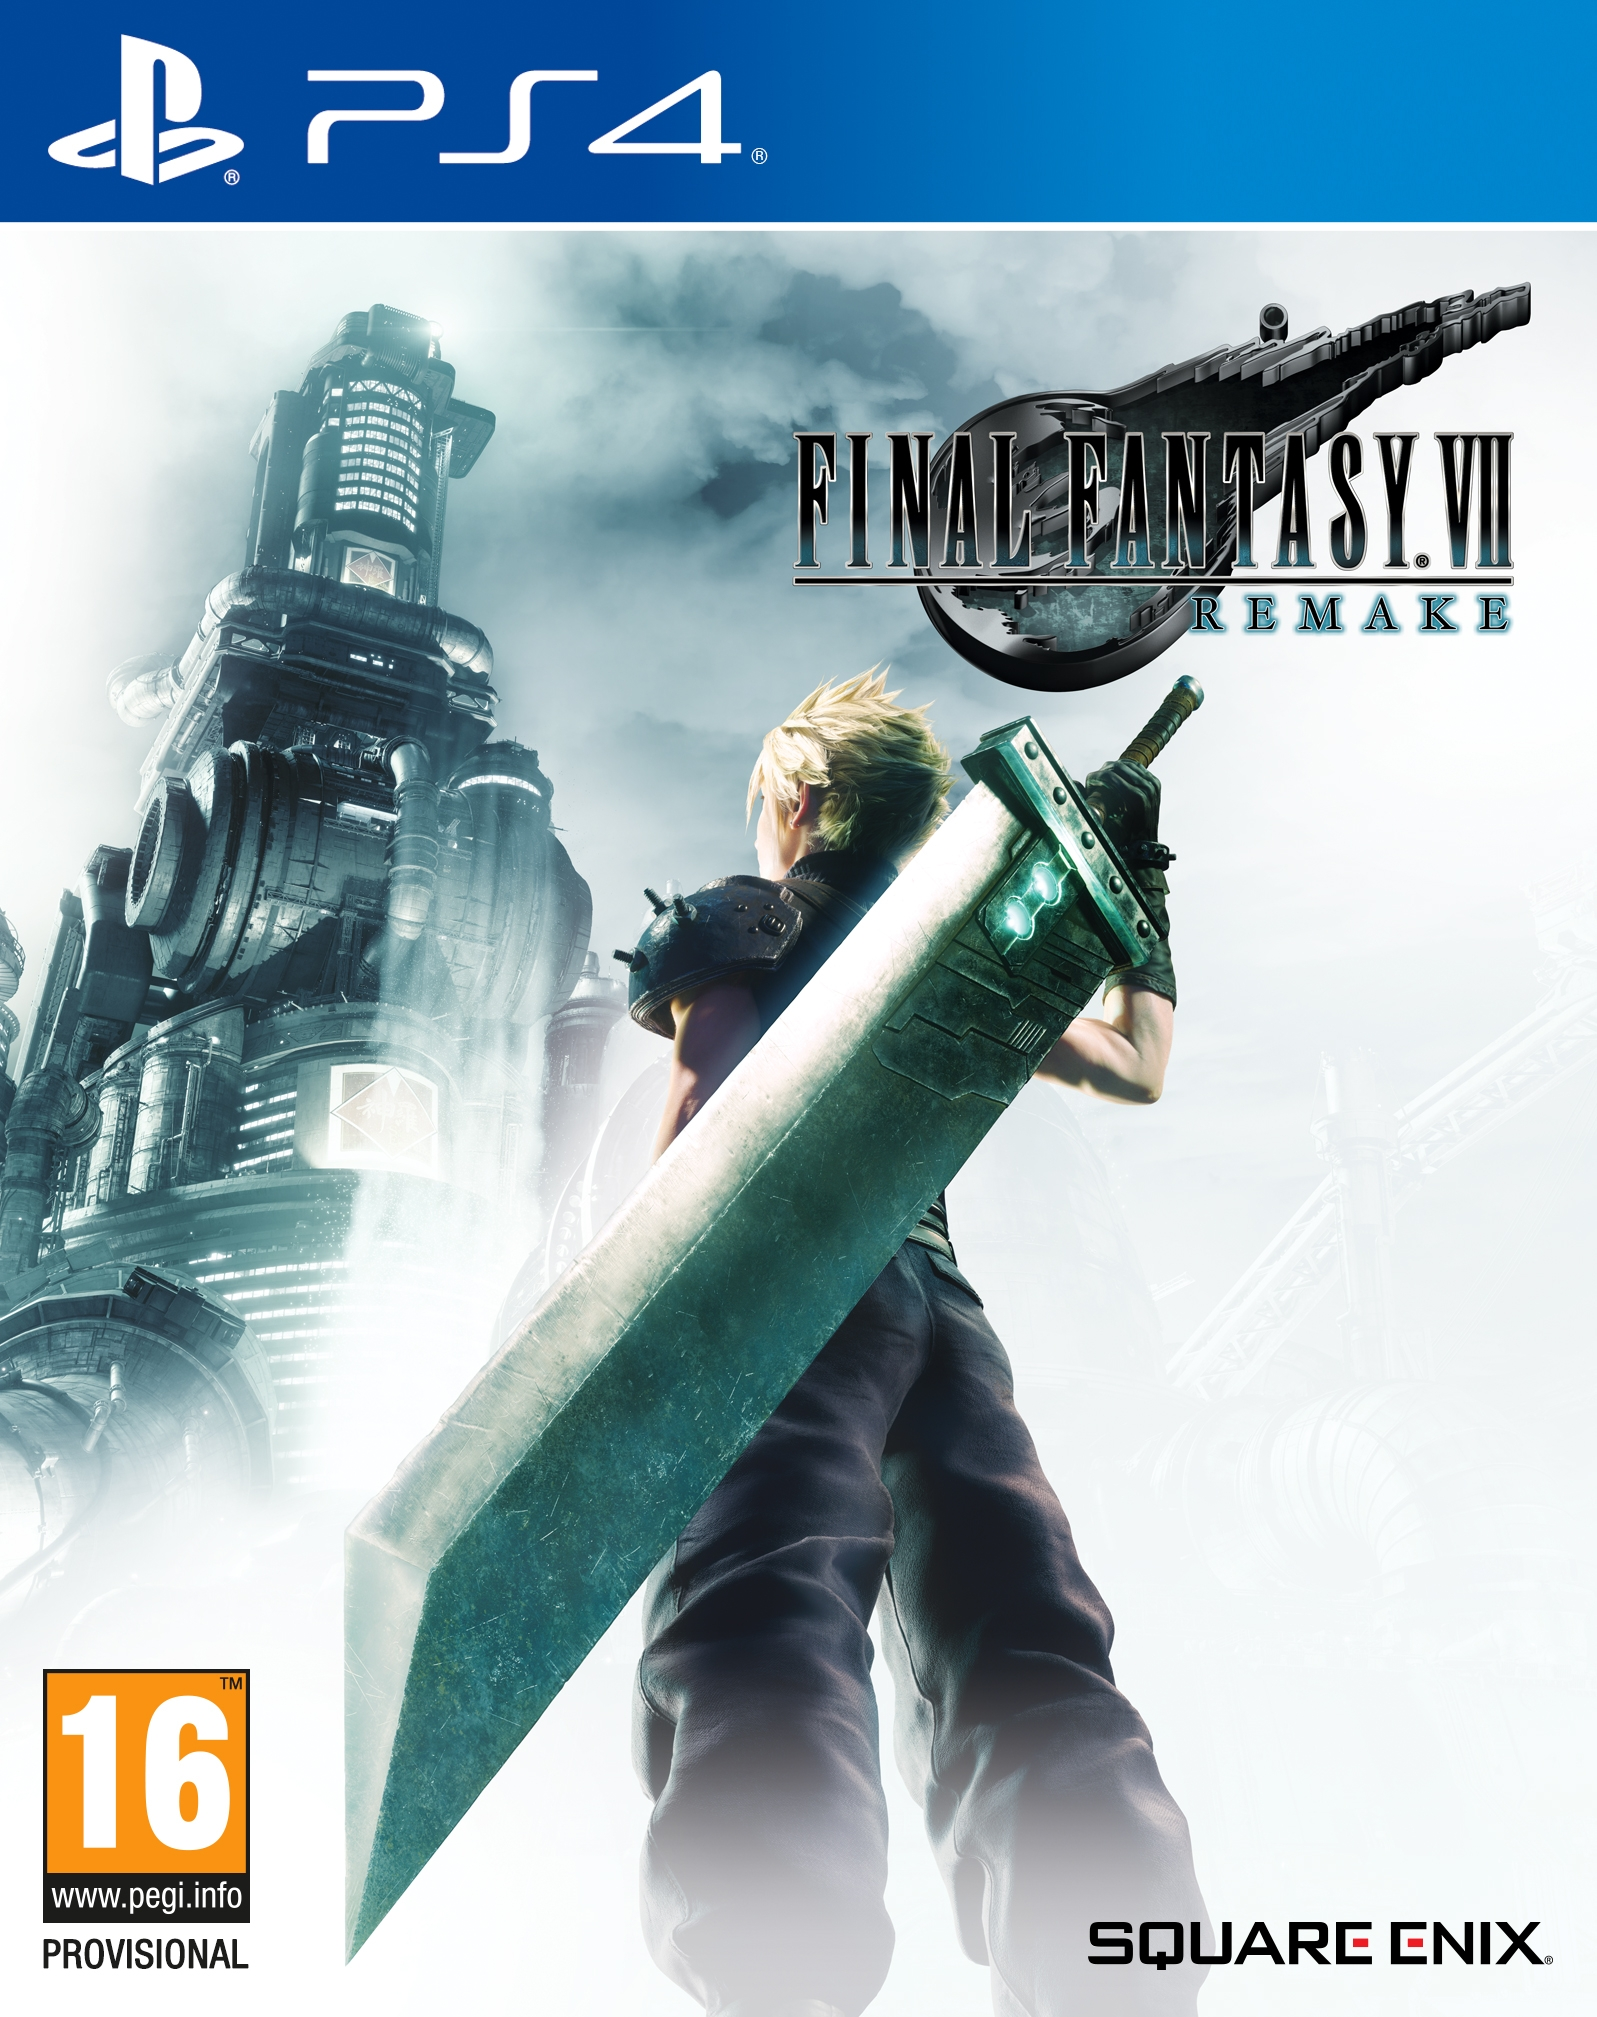 PS4 Final Fantasy VII Remake Deluxe Edition